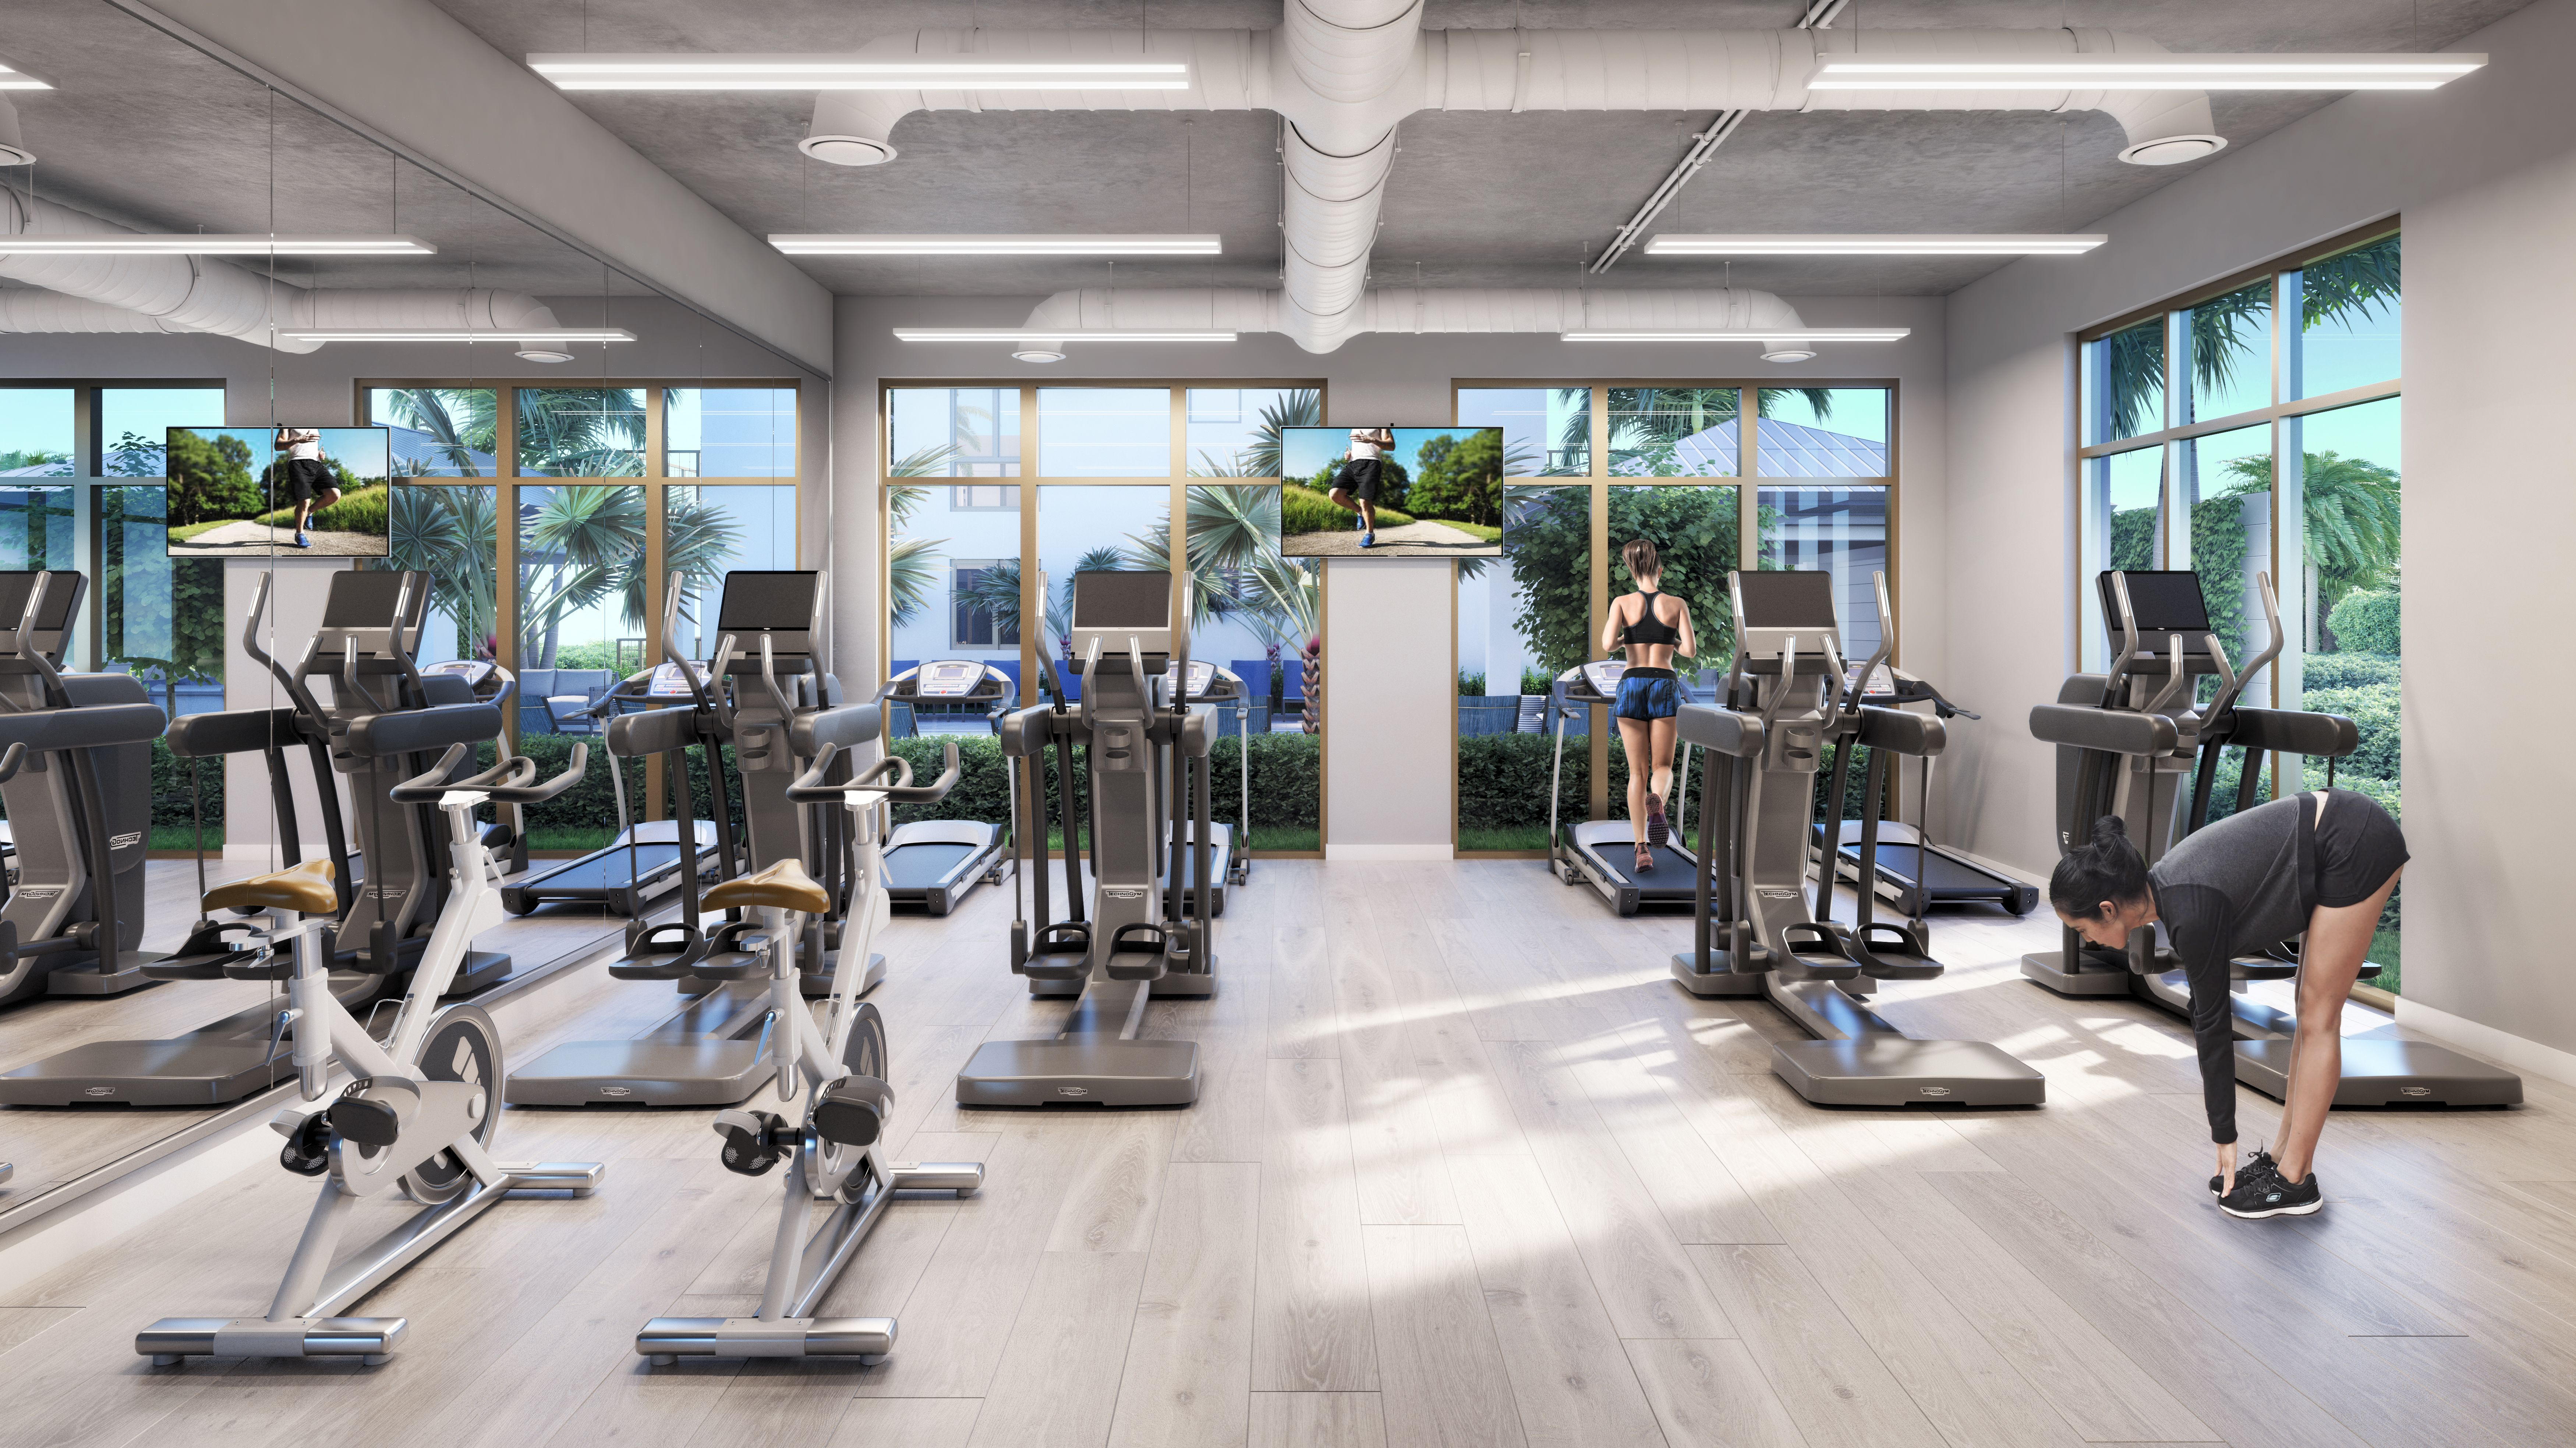 Gym At Shoma Village At Home Exercises Workout Rooms Gym